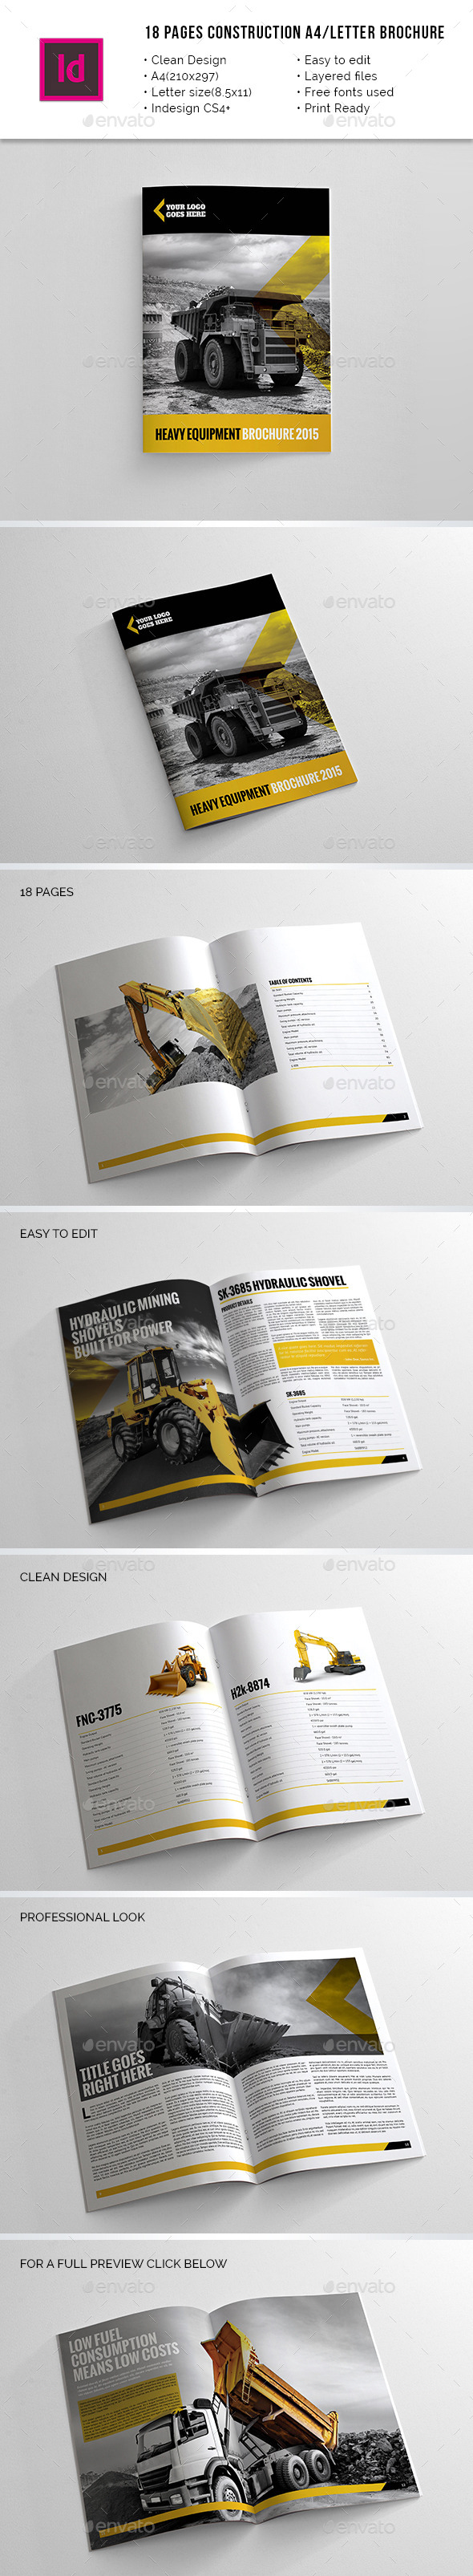 GraphicRiver 18 Pages Construction A4 Letter Brochure 10499309